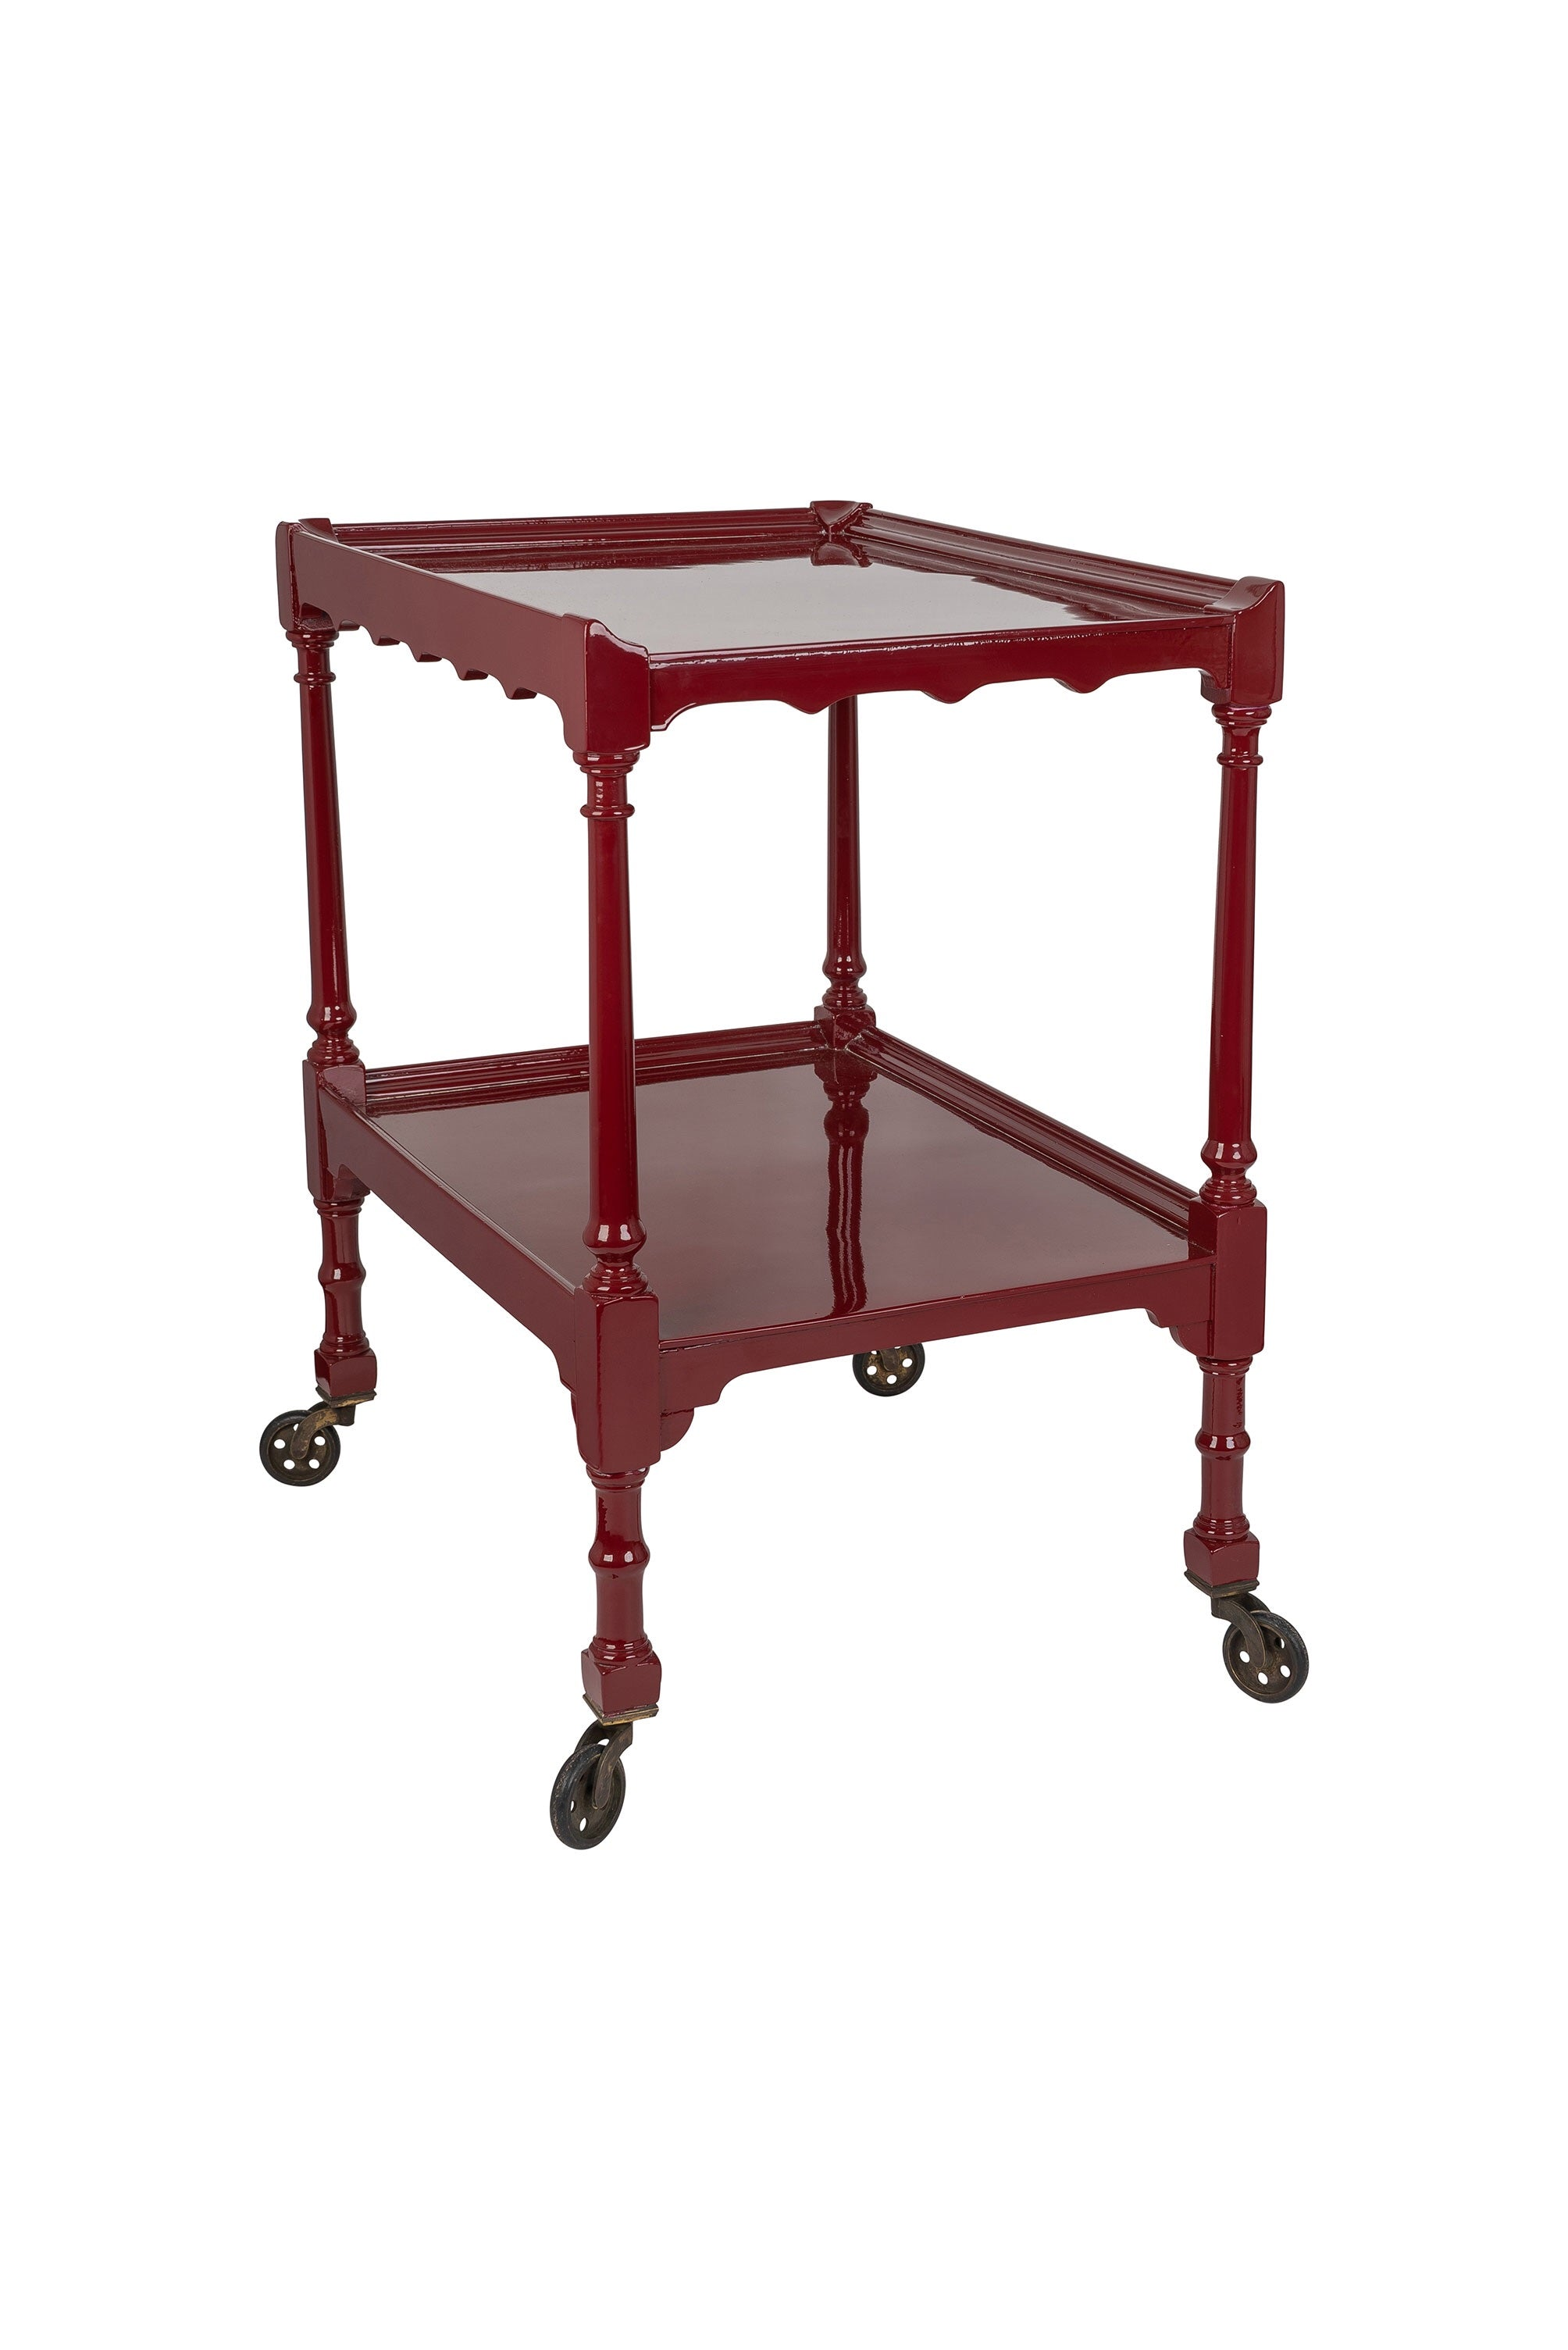 Vintage Rosewood Red Hand-Lacquered Tea Trolley